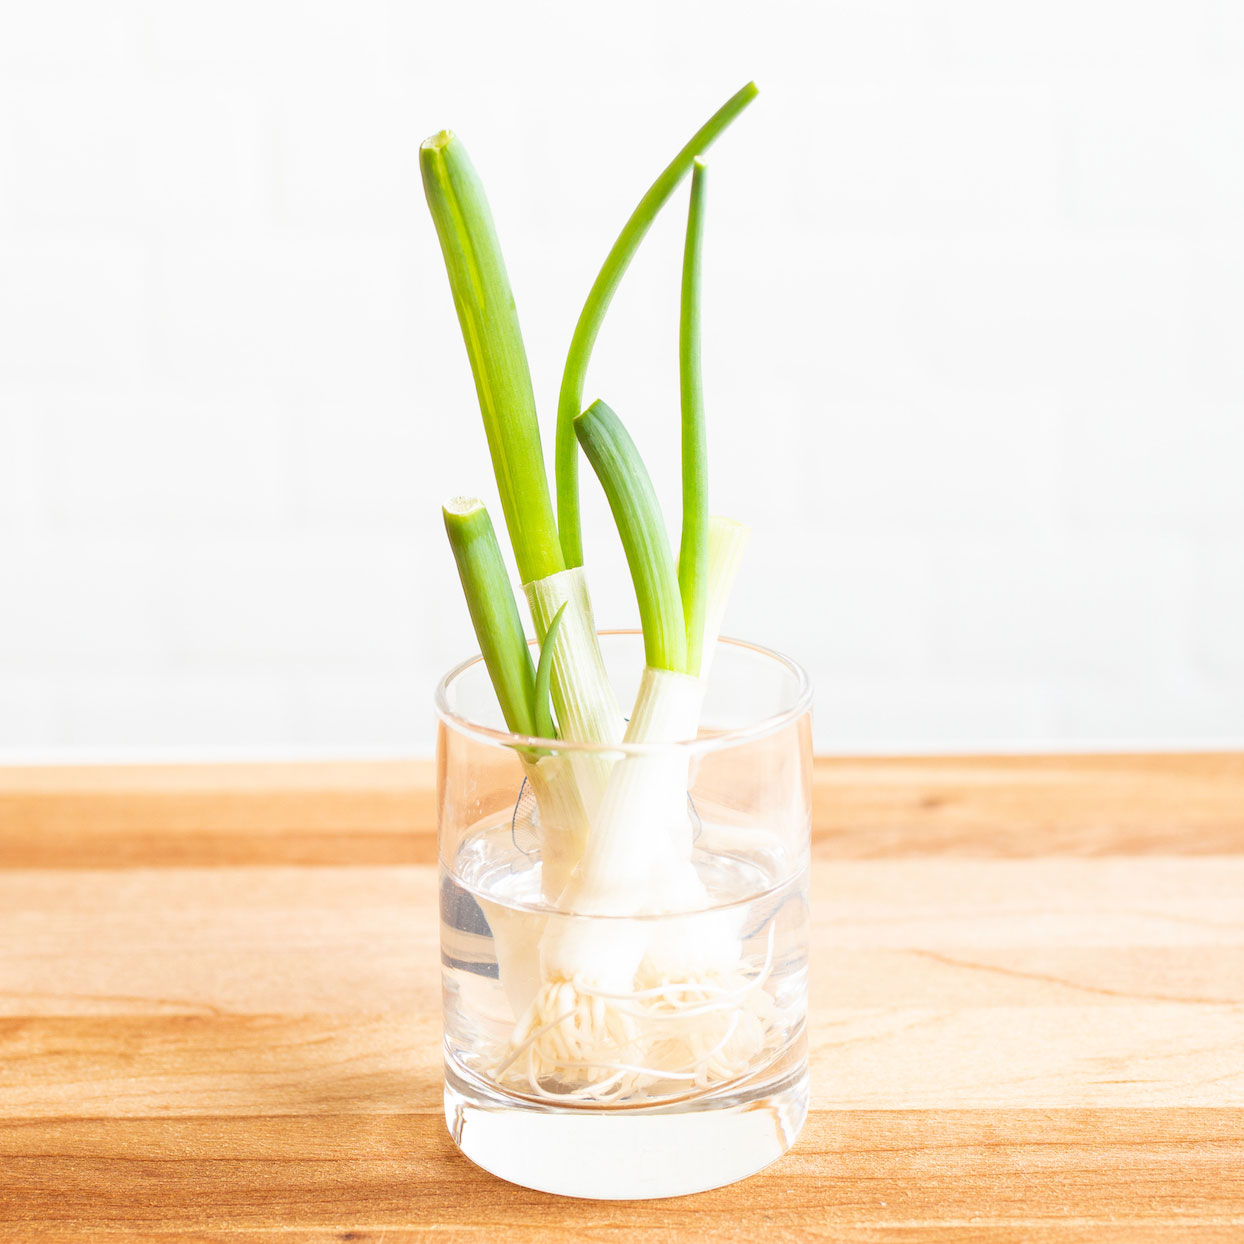 green onions in a glass